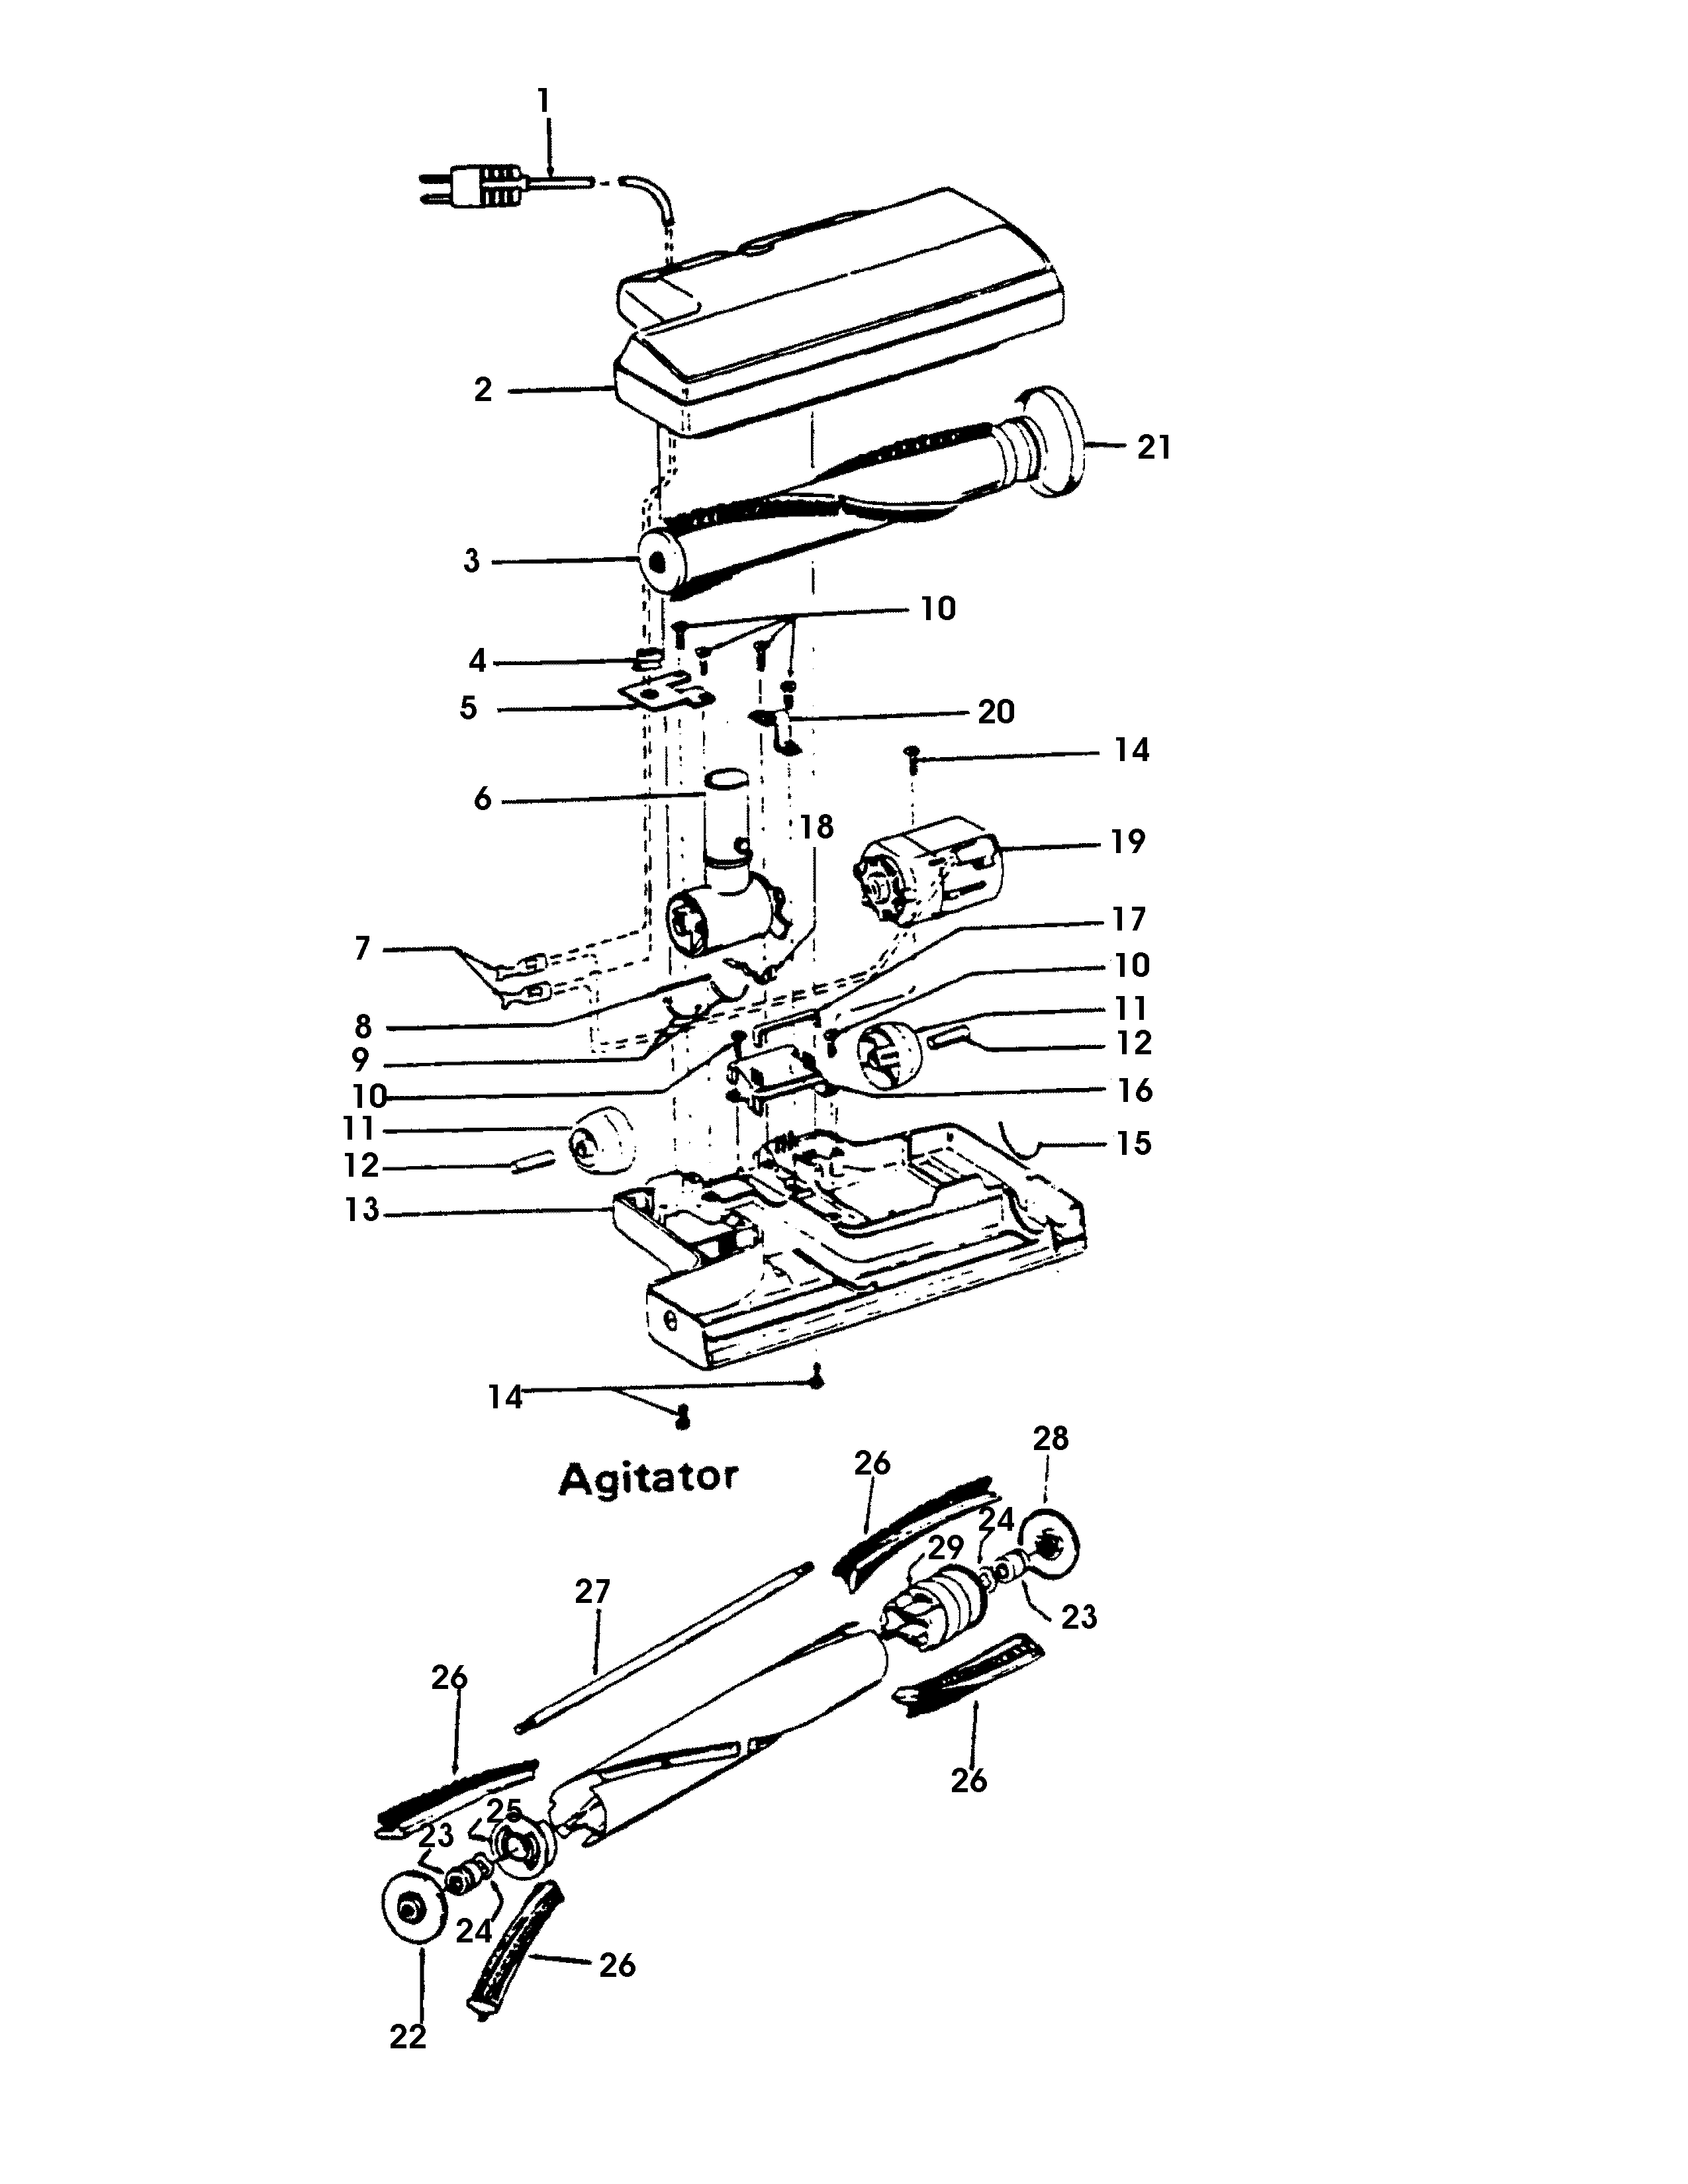 Hoover S3261--- powerednozzle, agitator diagram